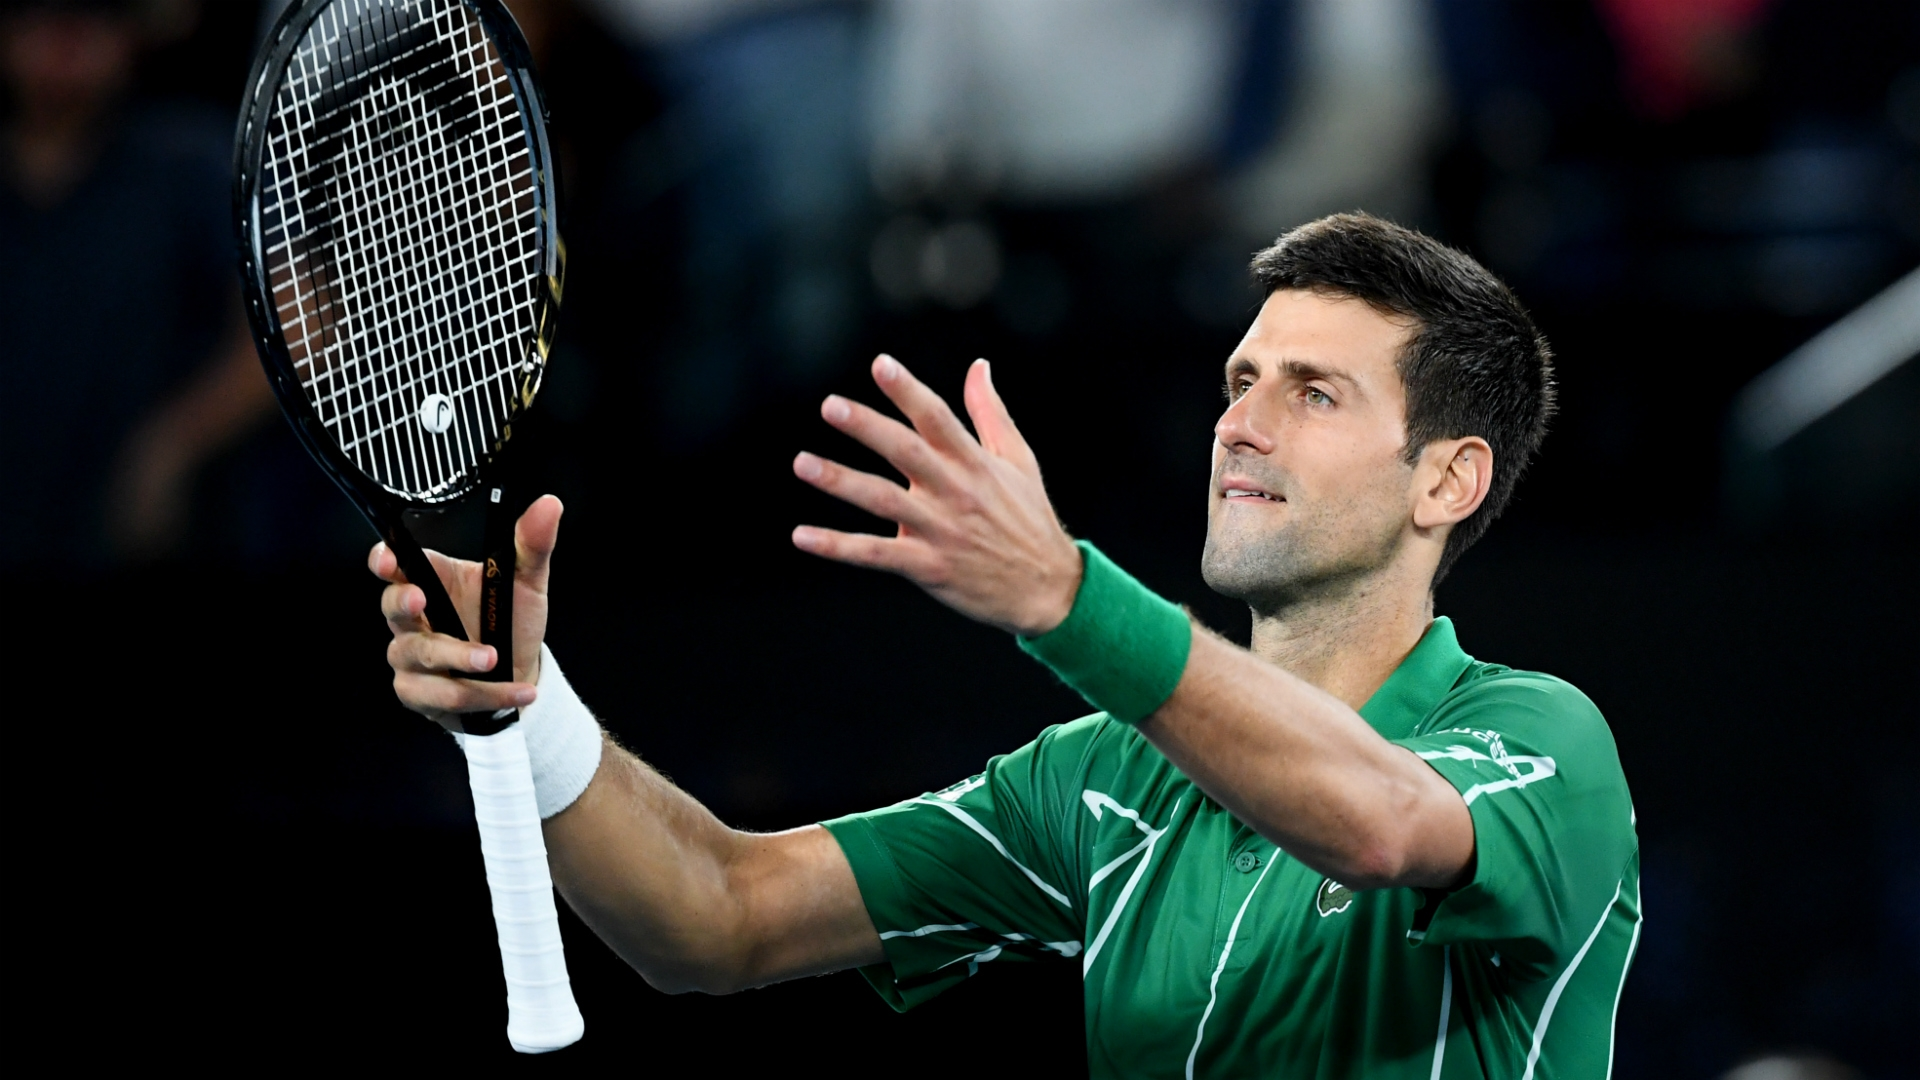 Australian Open 2020 Djokovic insists he is not dominating 1920x1080